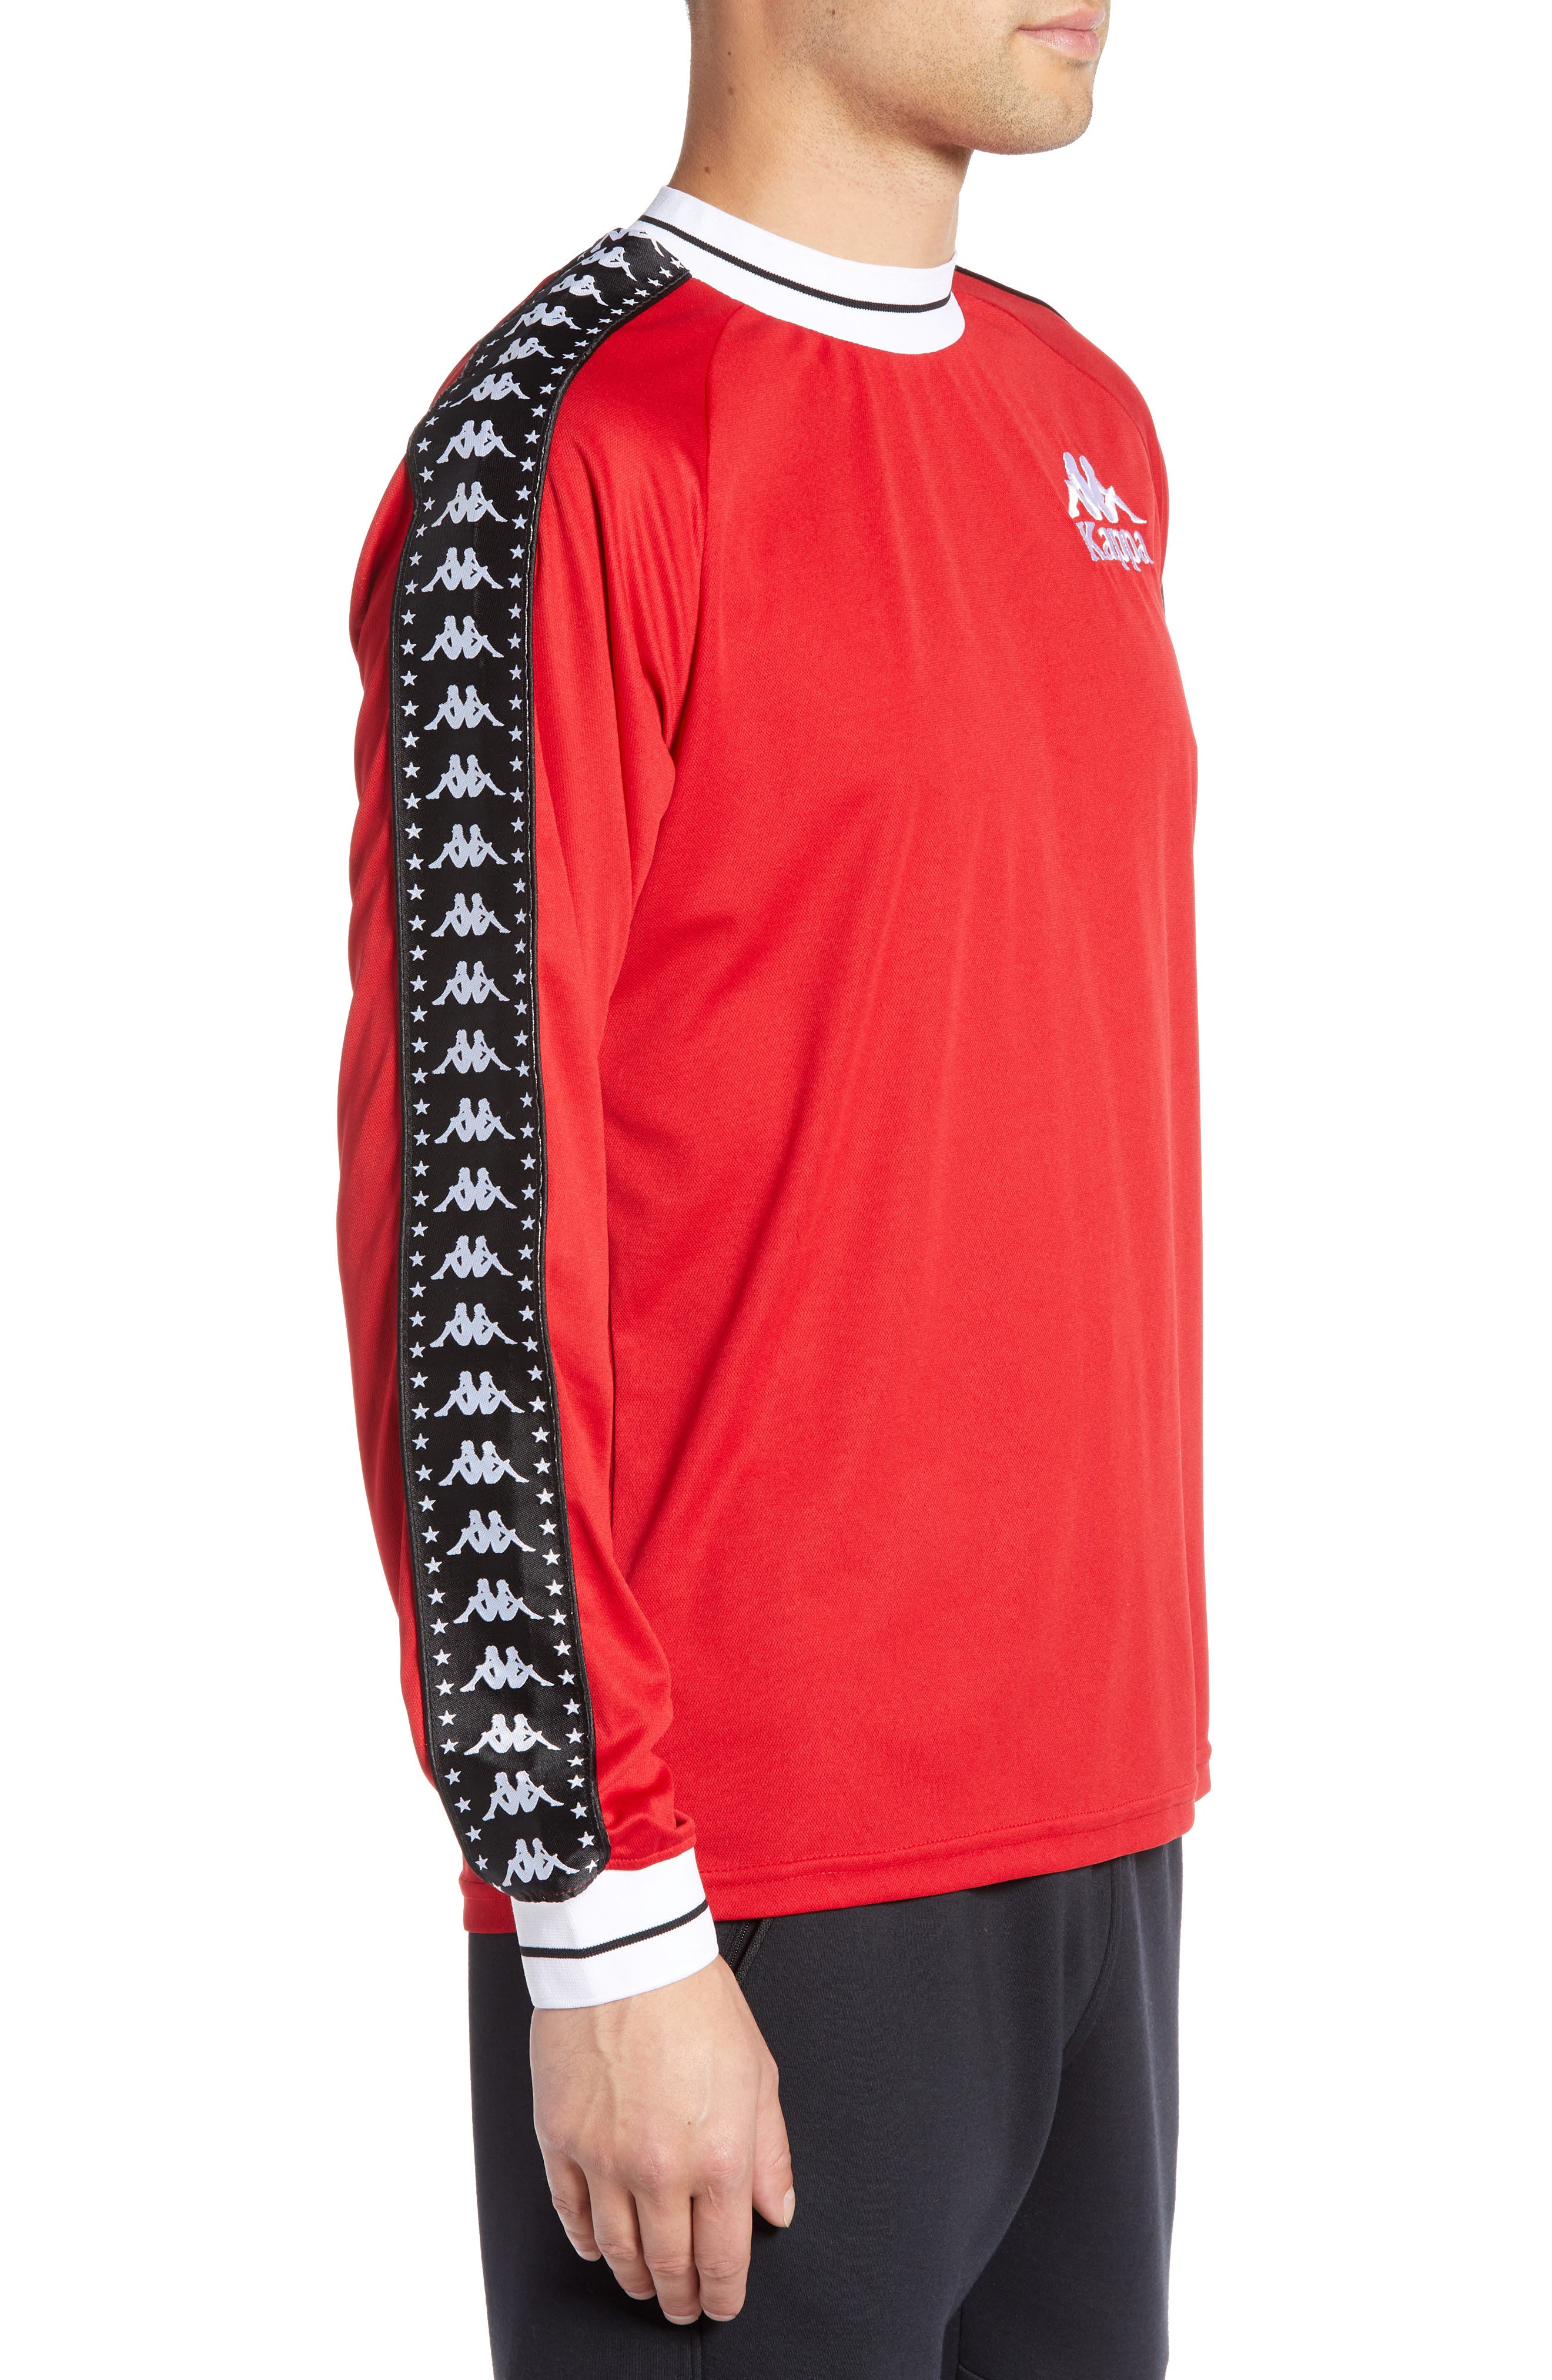 Authentic Aneat Logo Taped Long Sleeve T-Shirt,                             Alternate thumbnail 3, color,                             RED/ BLACK/ WHITE